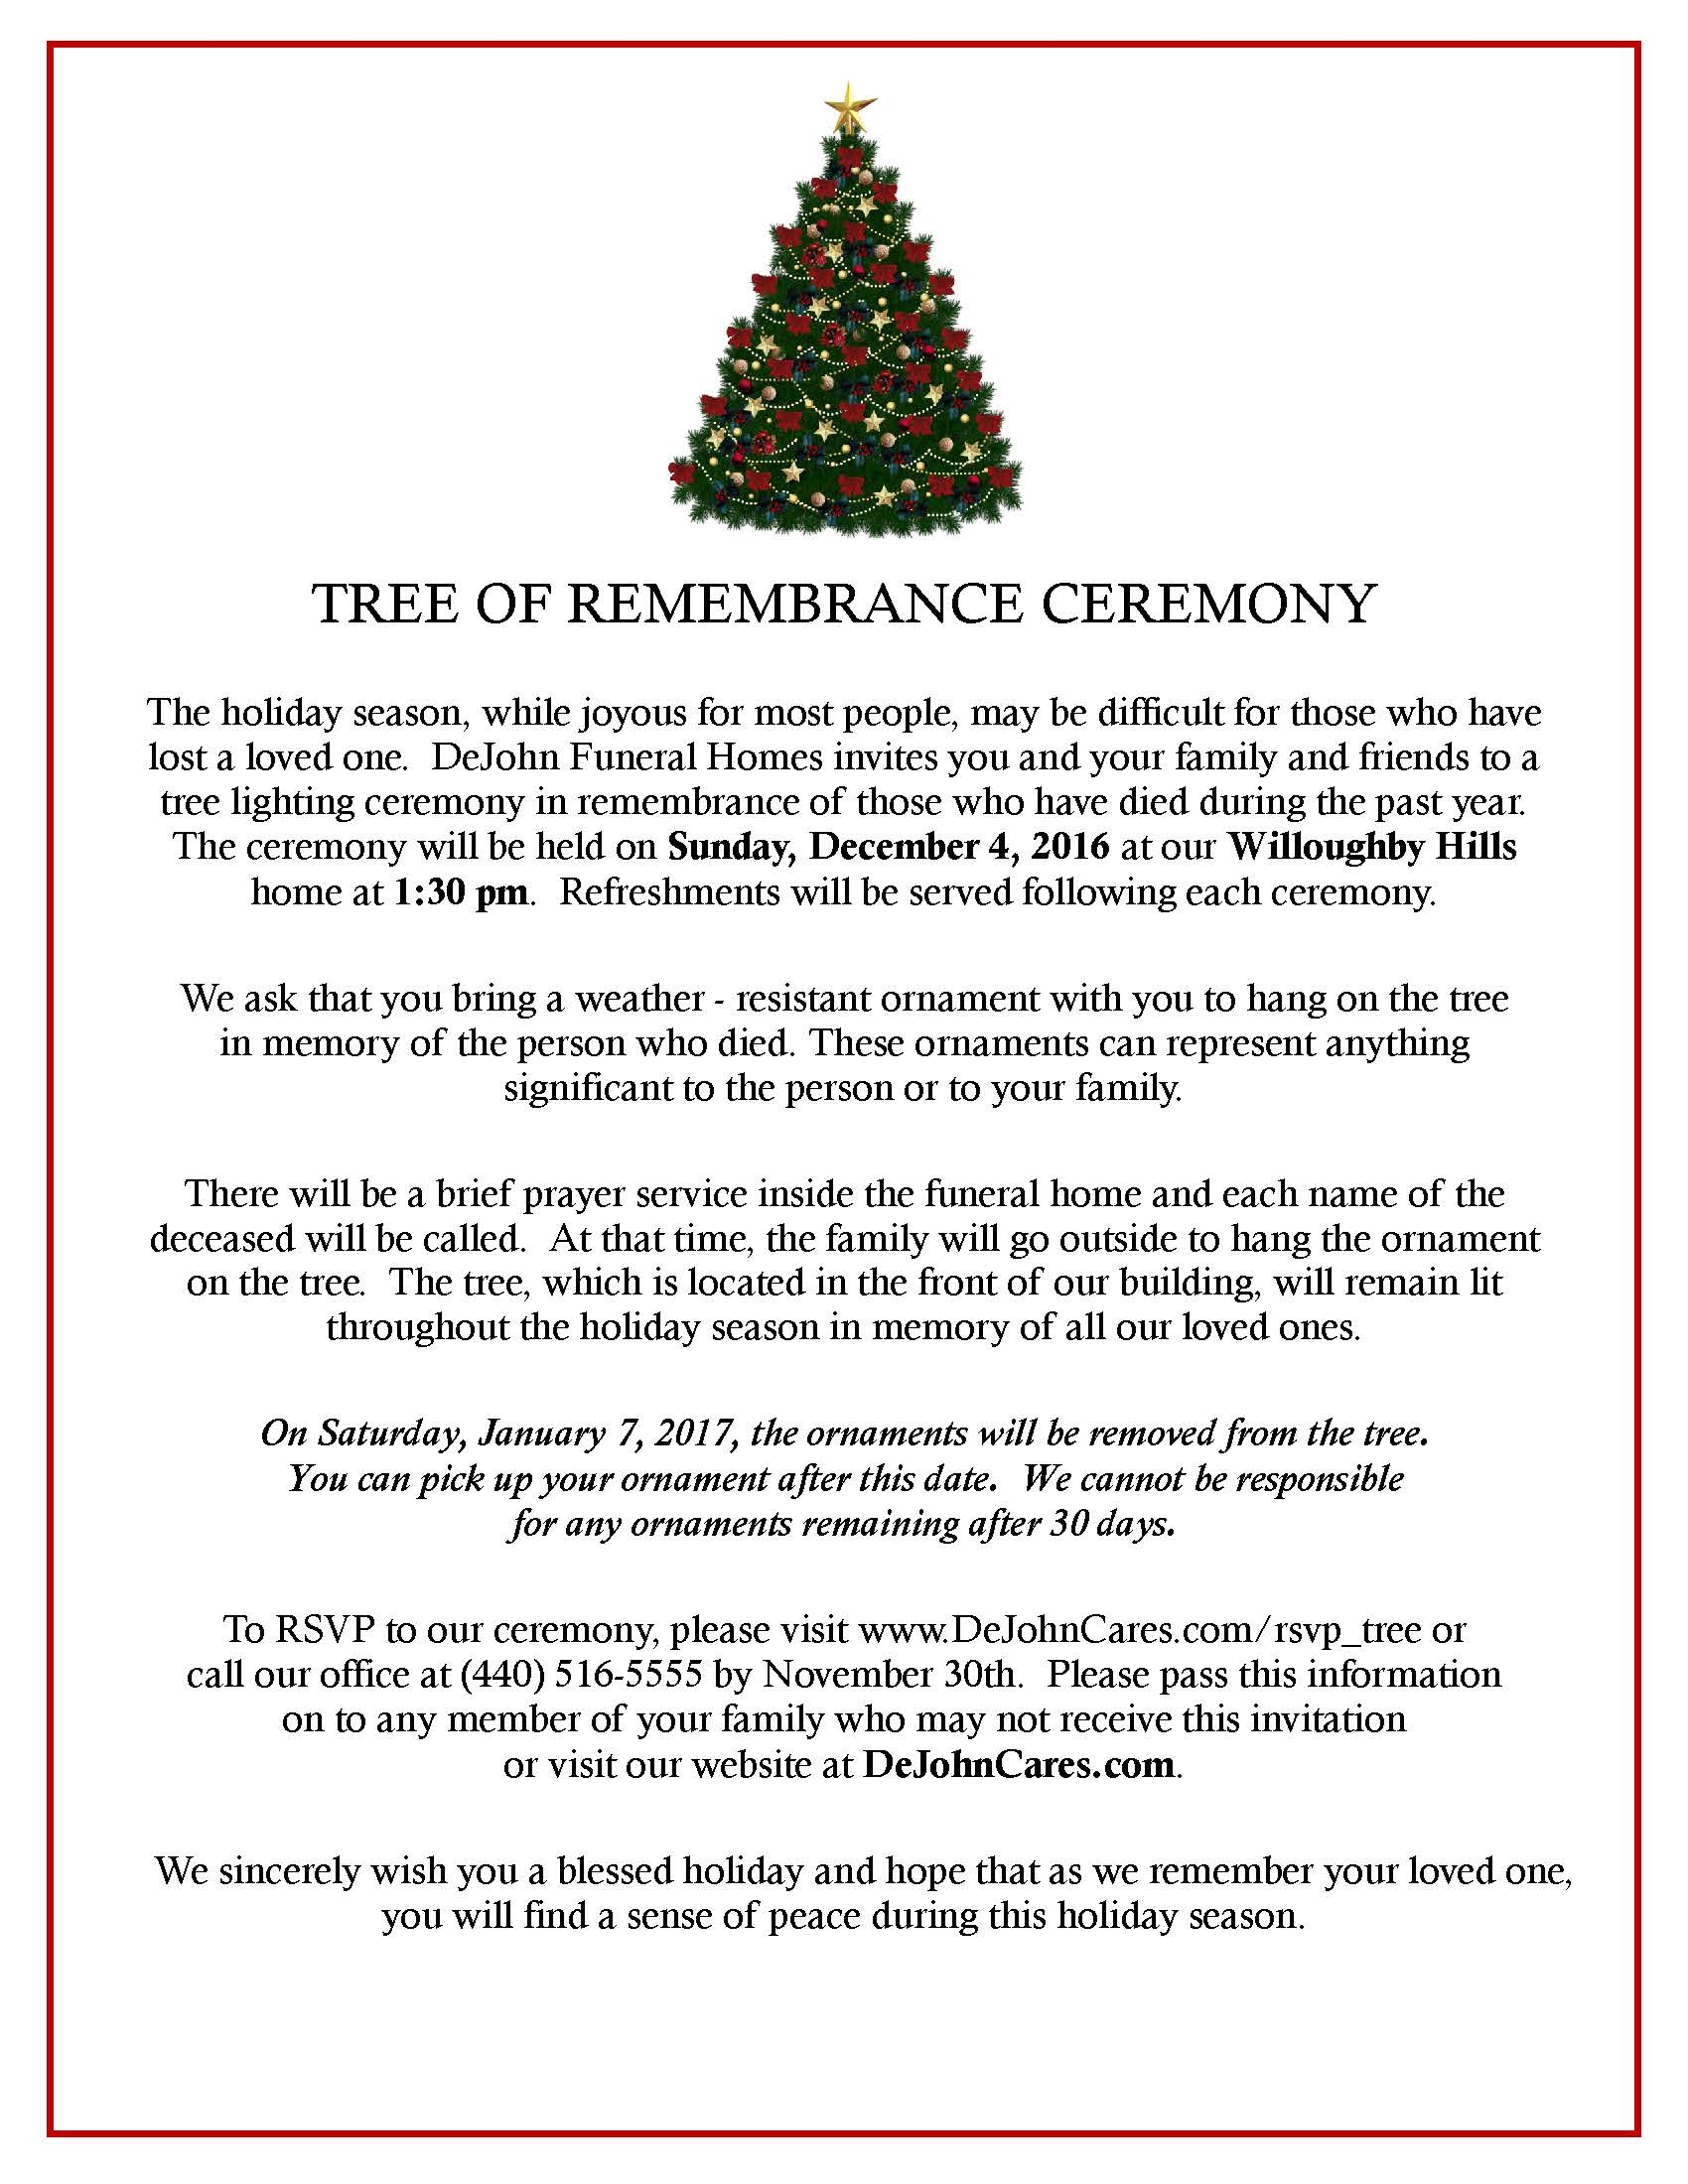 Tree of Remembrance Ceremony - DeJohn Funeral Homes & Crematory